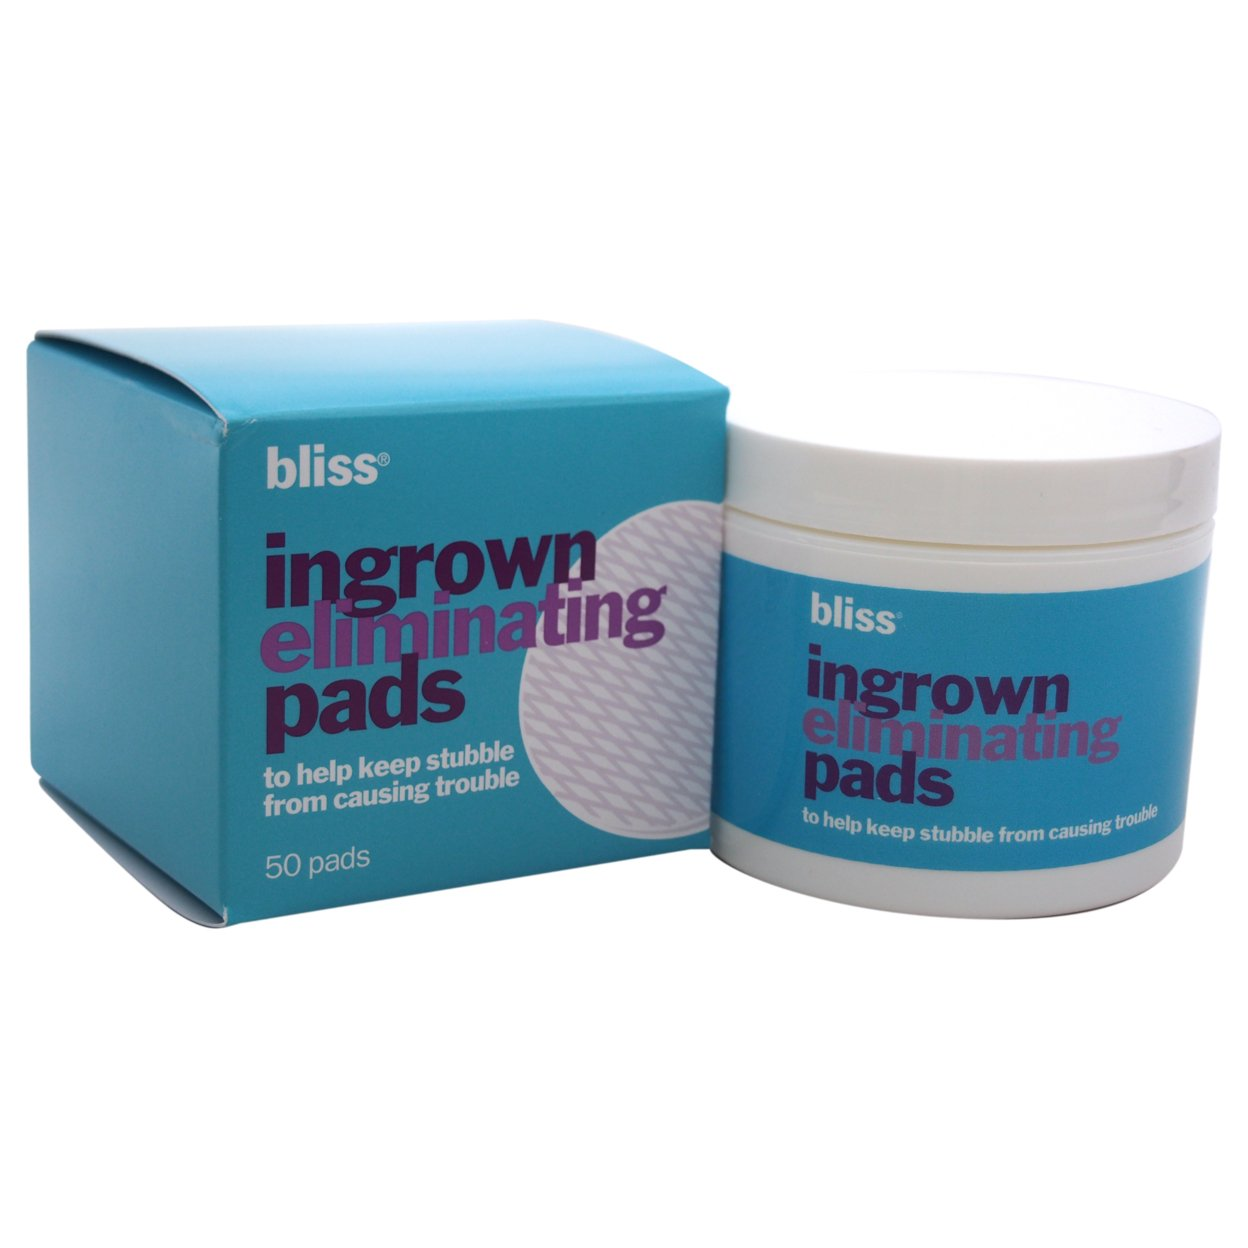 Ingrown Eliminating Pads by Bliss for Unisex - 50 Pc Pads 56d0b866a3771c59288b8463